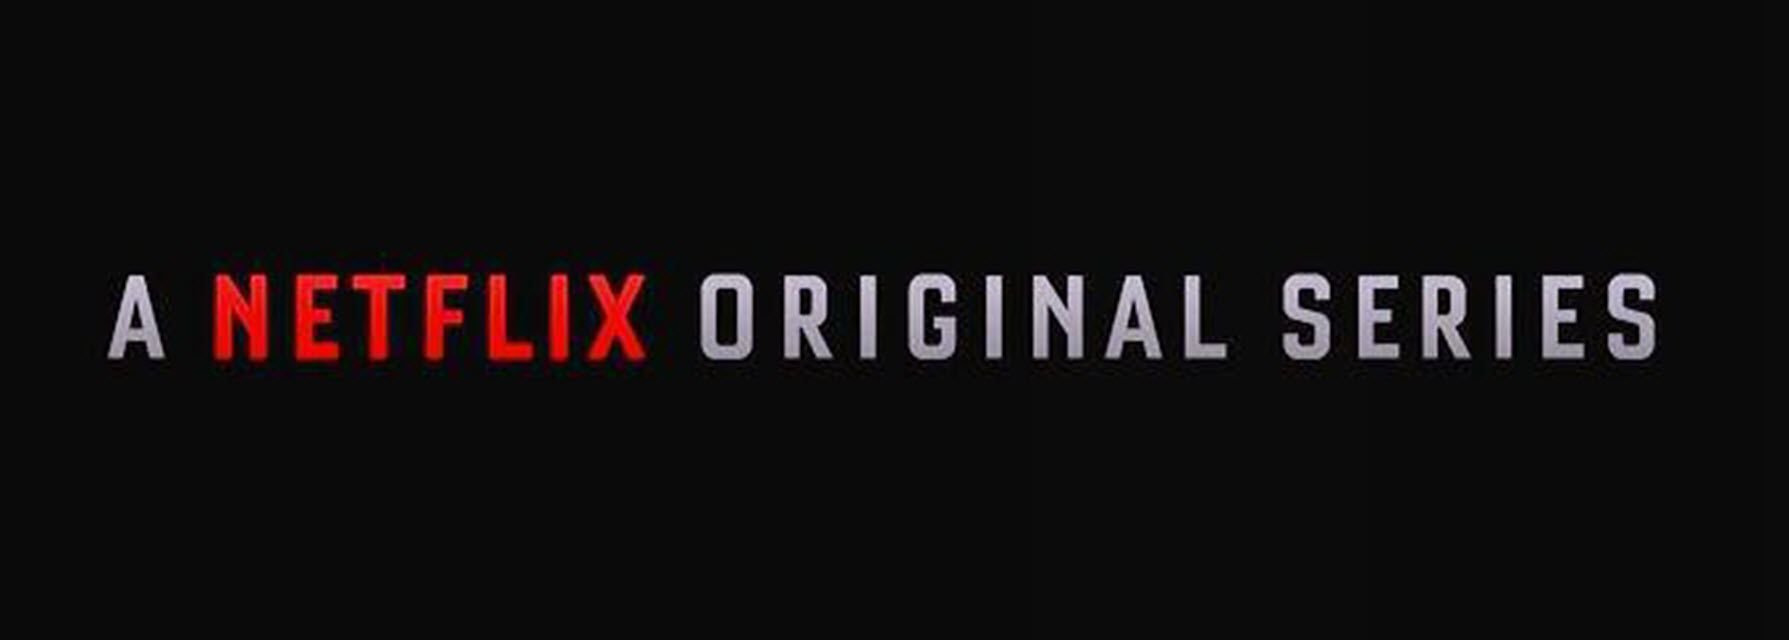 What Types of Shows Stream on Netflix?